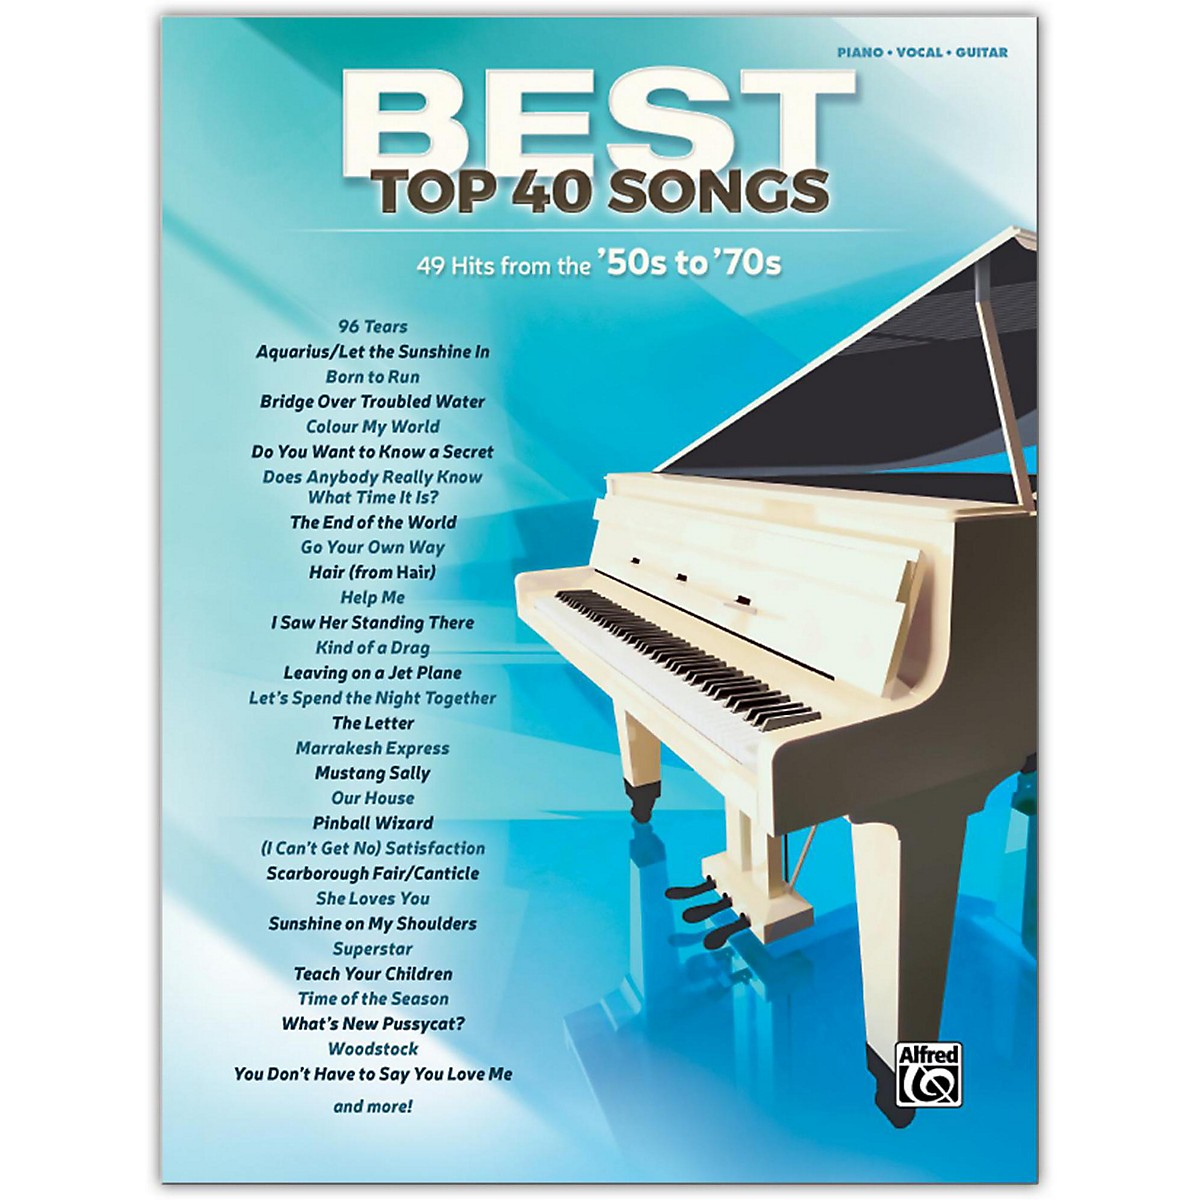 Alfred Best Top 40 Songs: '50s to '70s, Piano/Vocal/Guitar Songbook